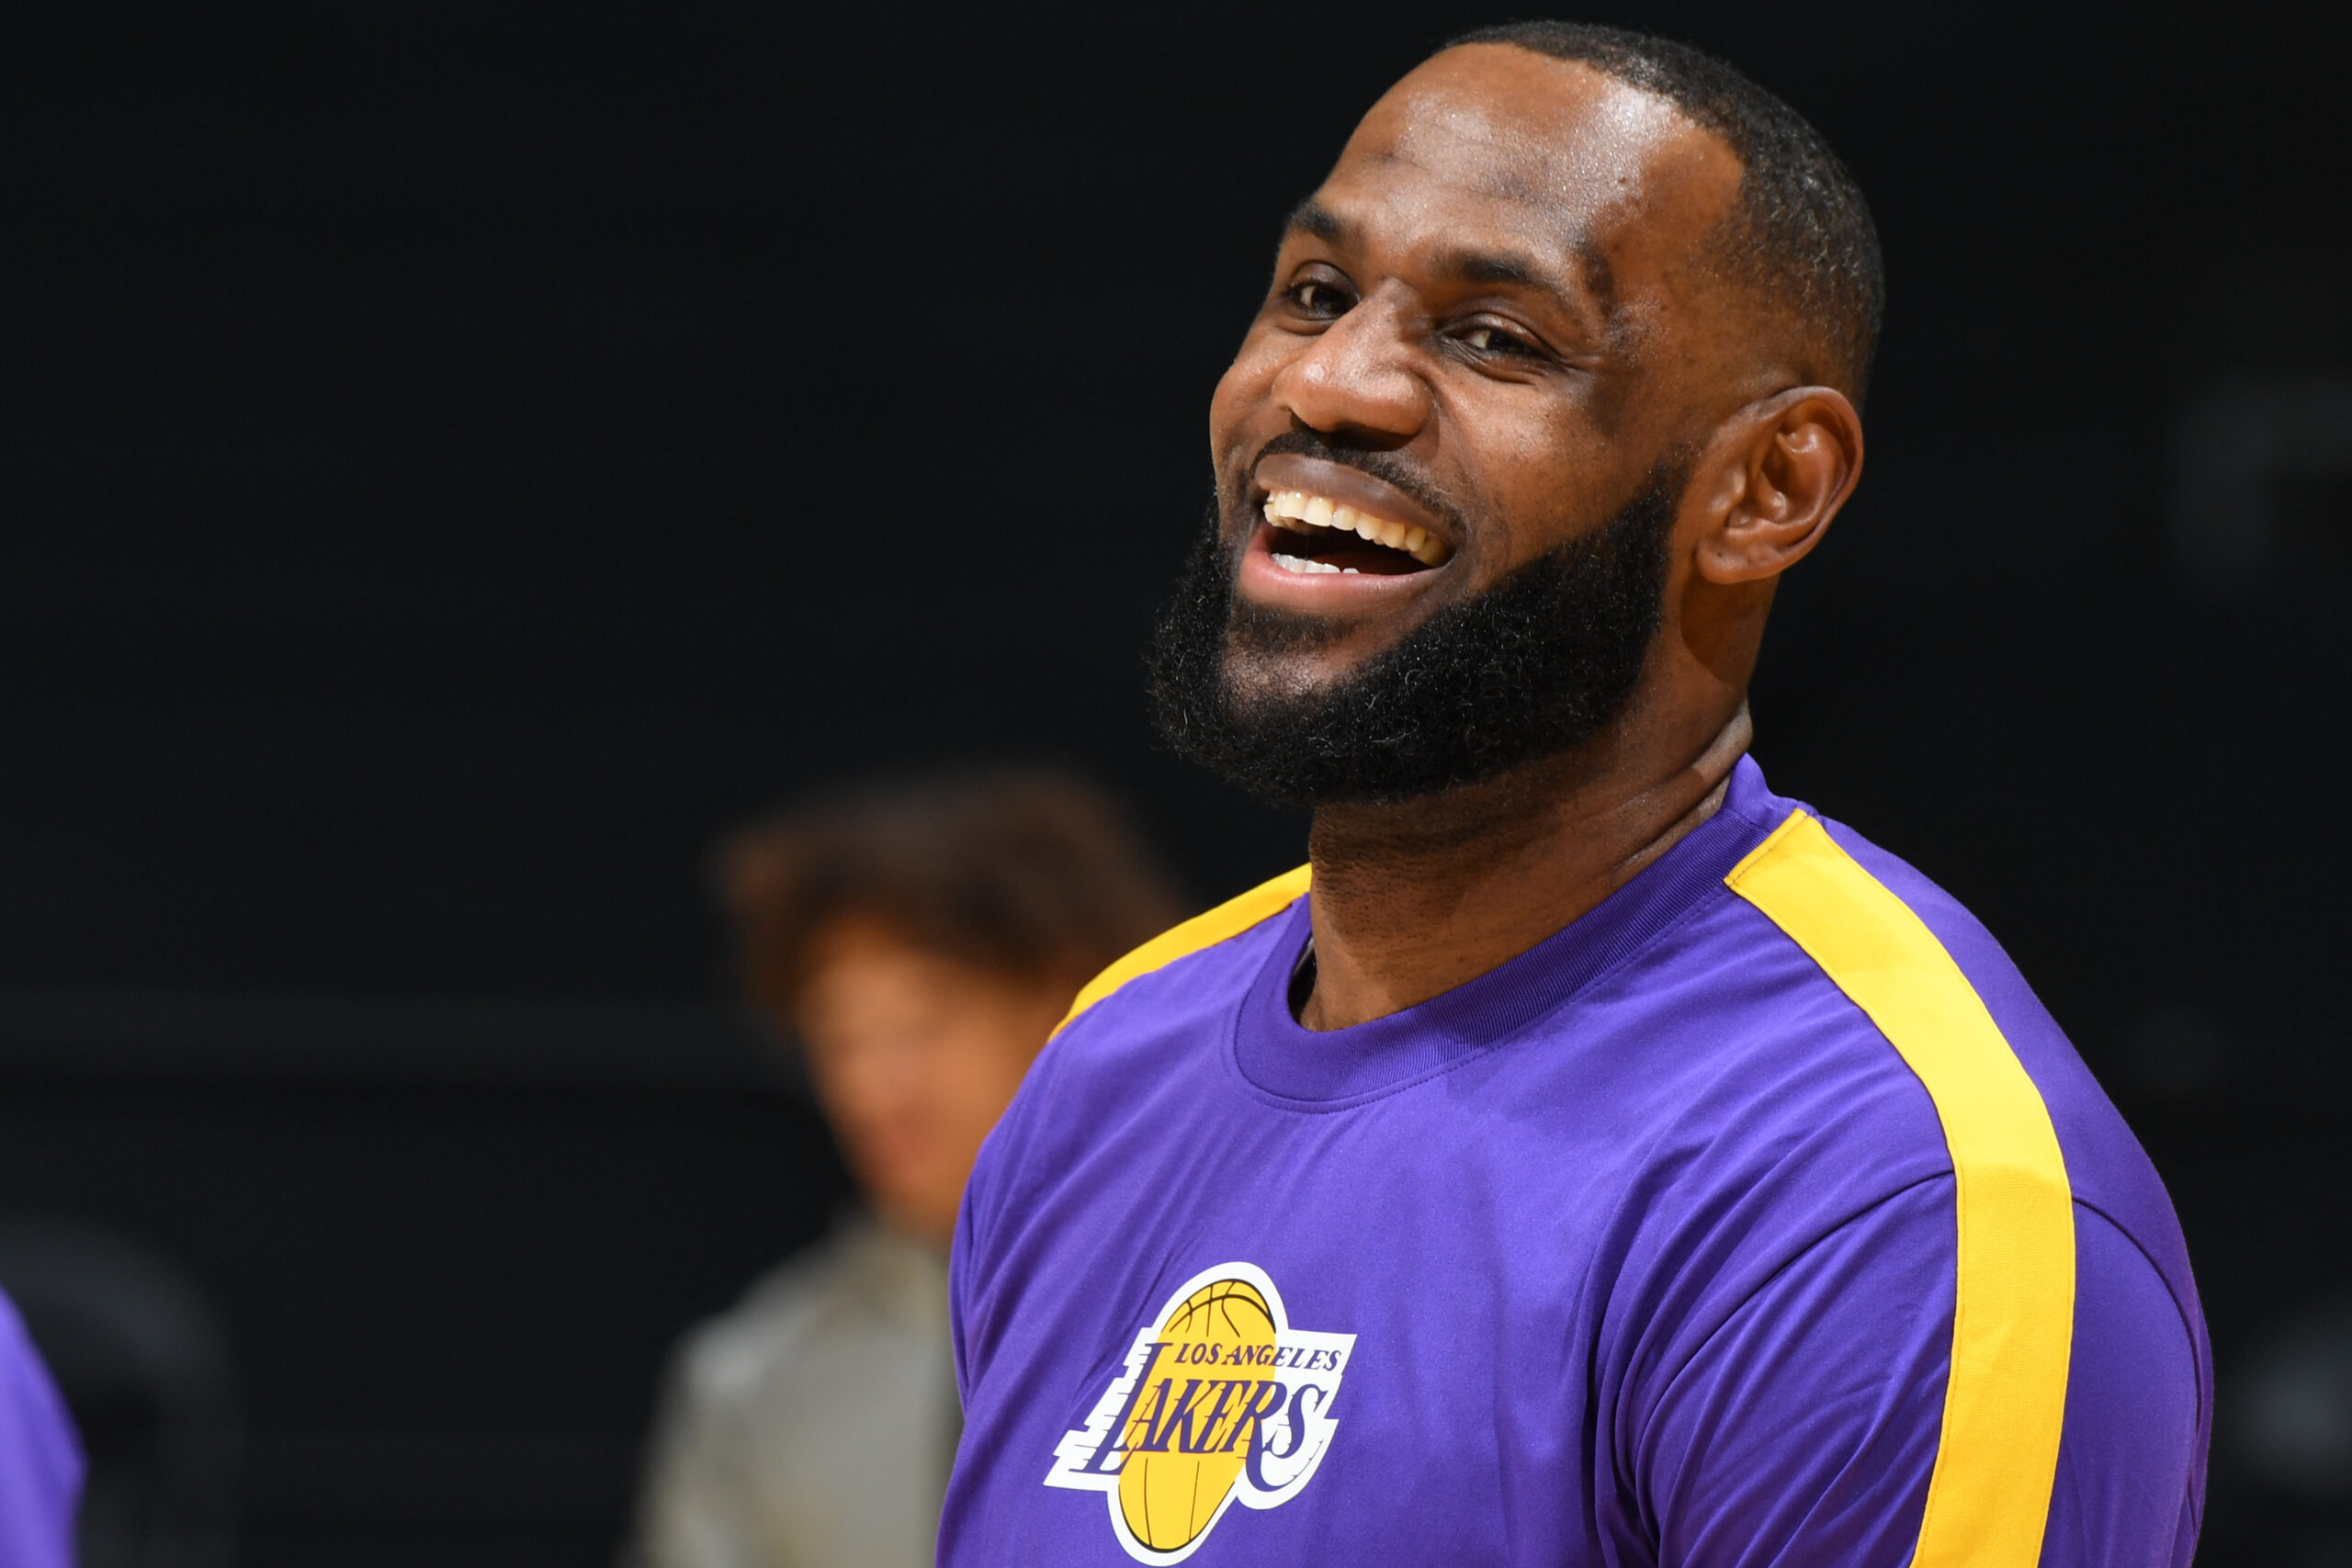 LeBron James introduced in new trailer for 'Space Jam: A New Legacy'